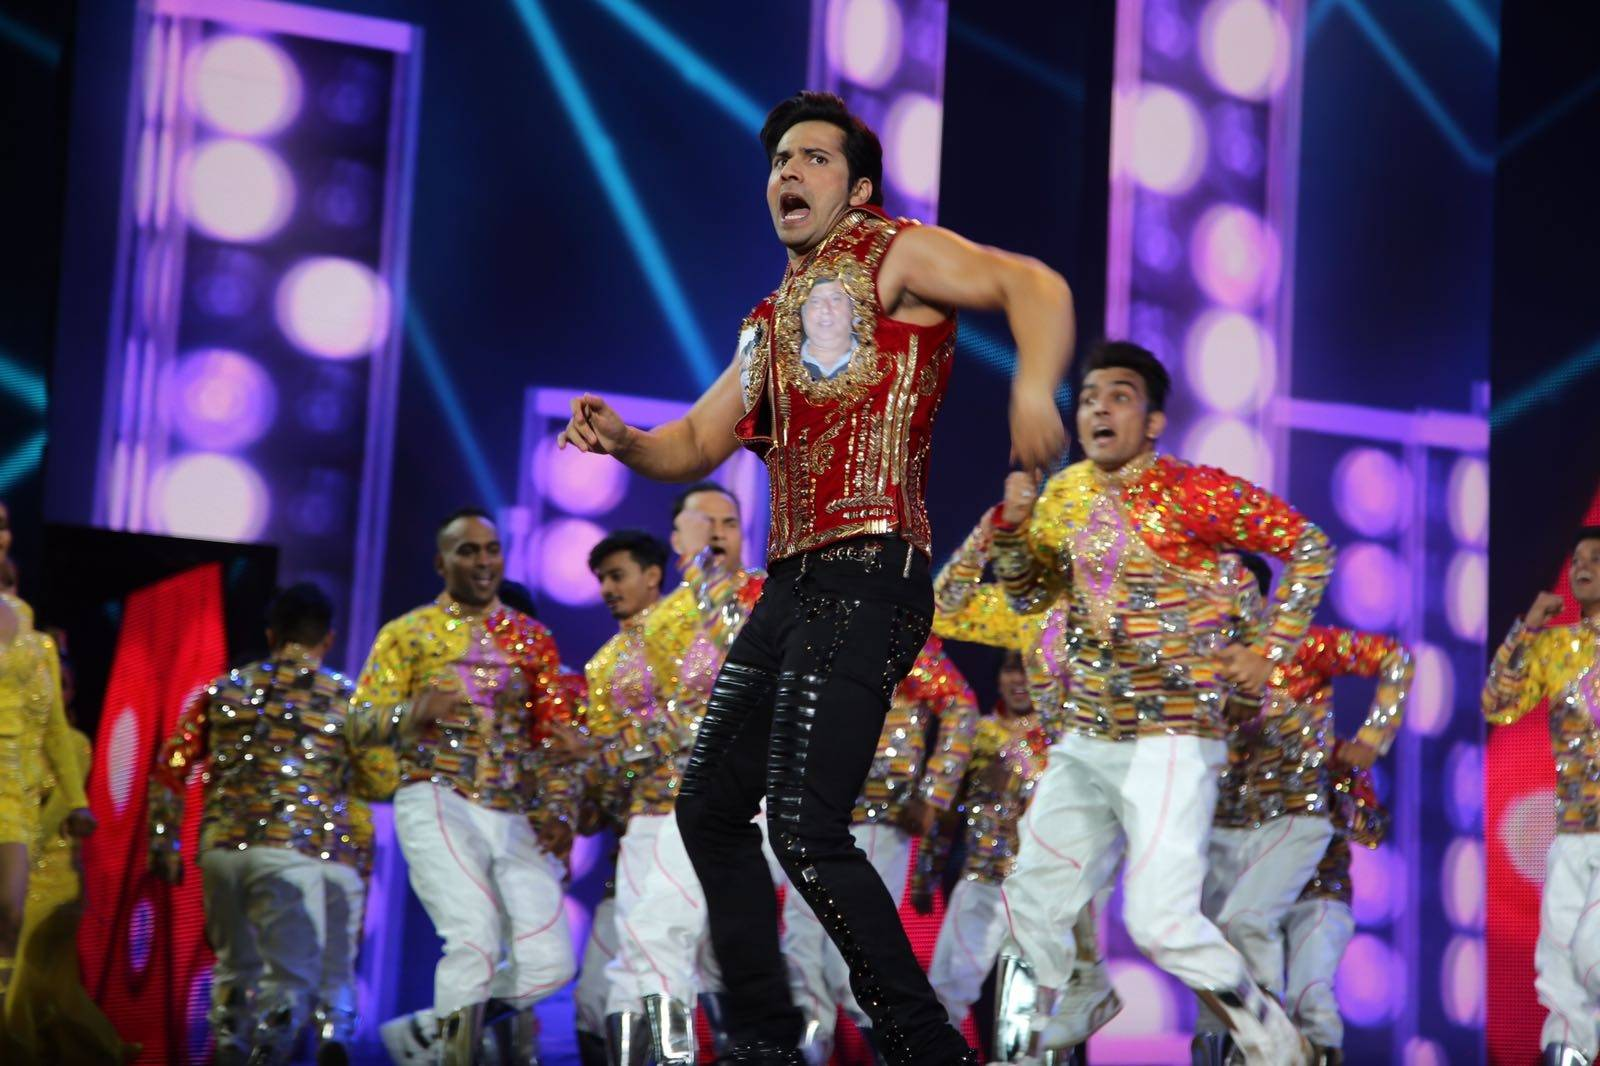 Salman Khan and Varun Dhawan dance to the iconic Judwaa song